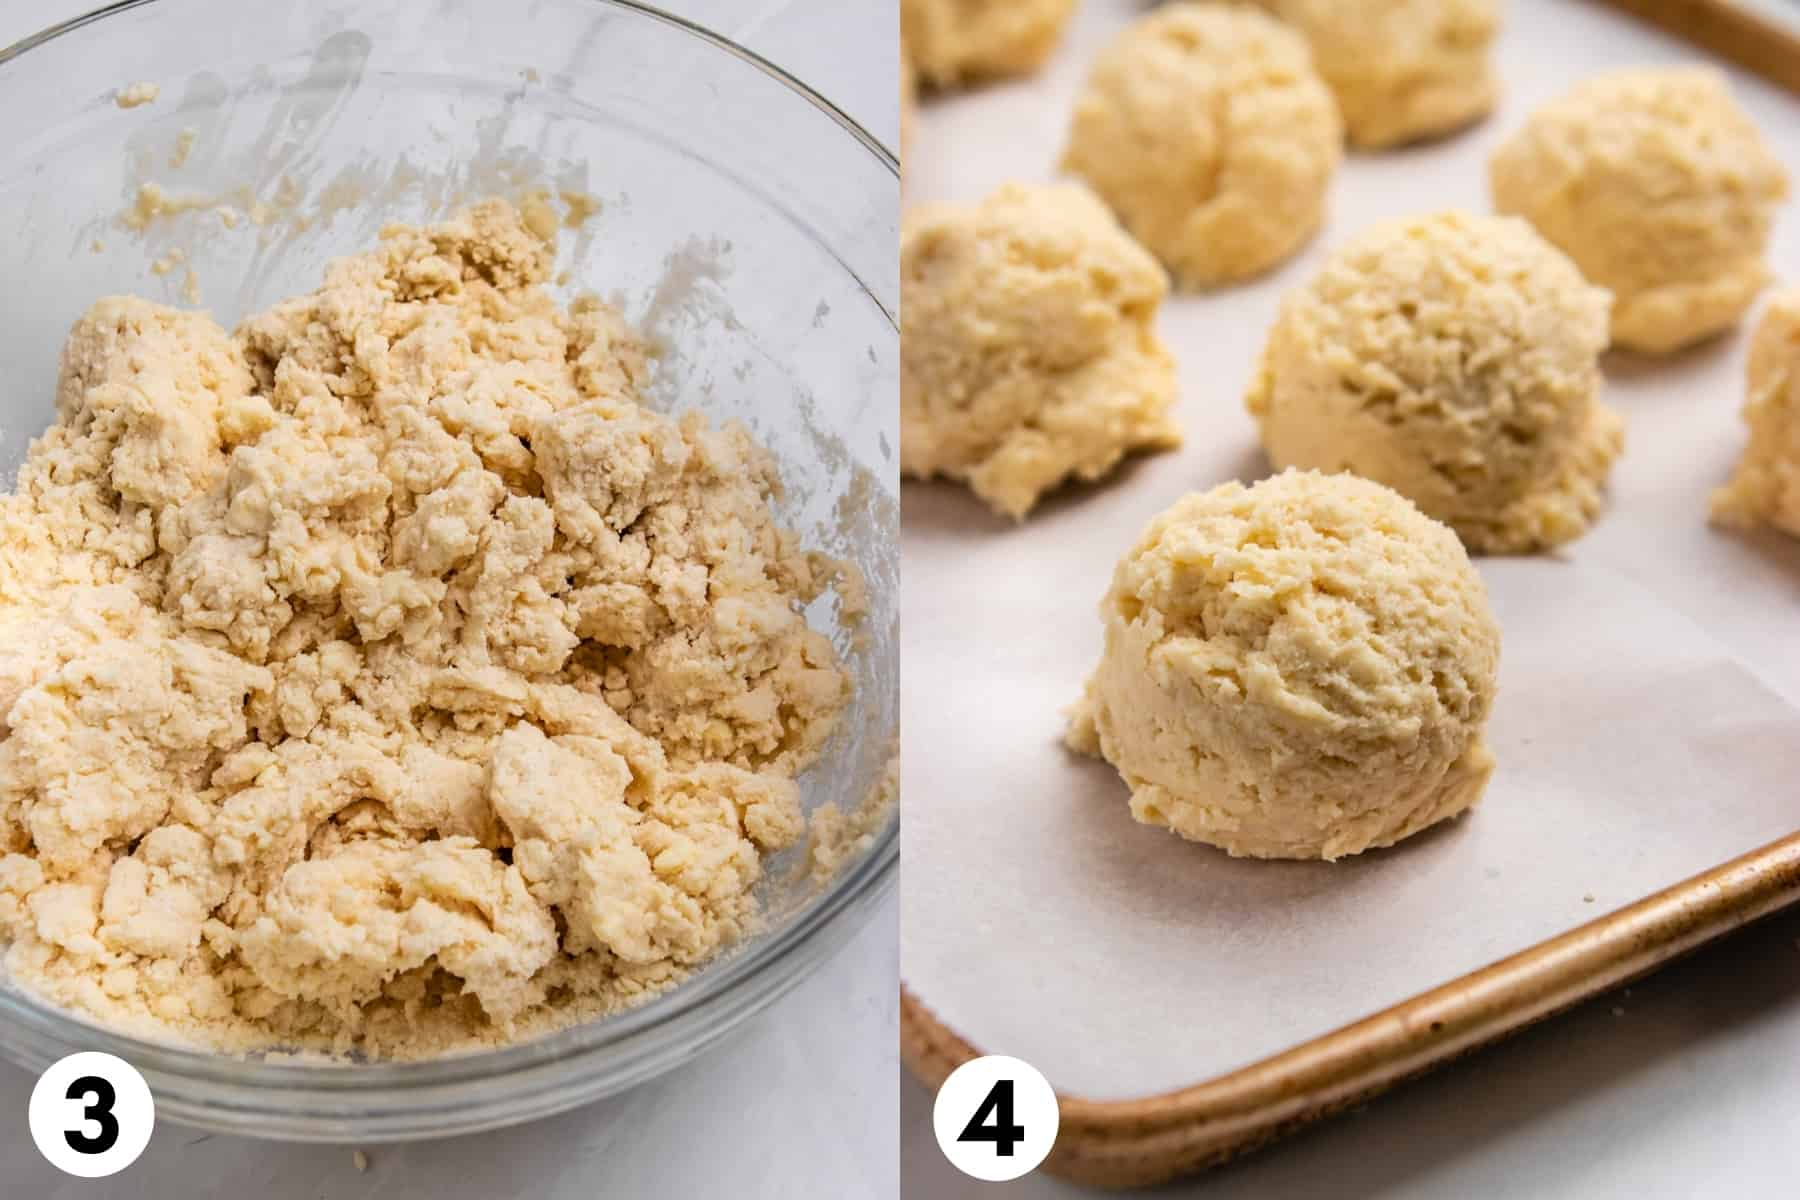 Buttermilk biscuit dough in bowl and then scooped on sheet pan.